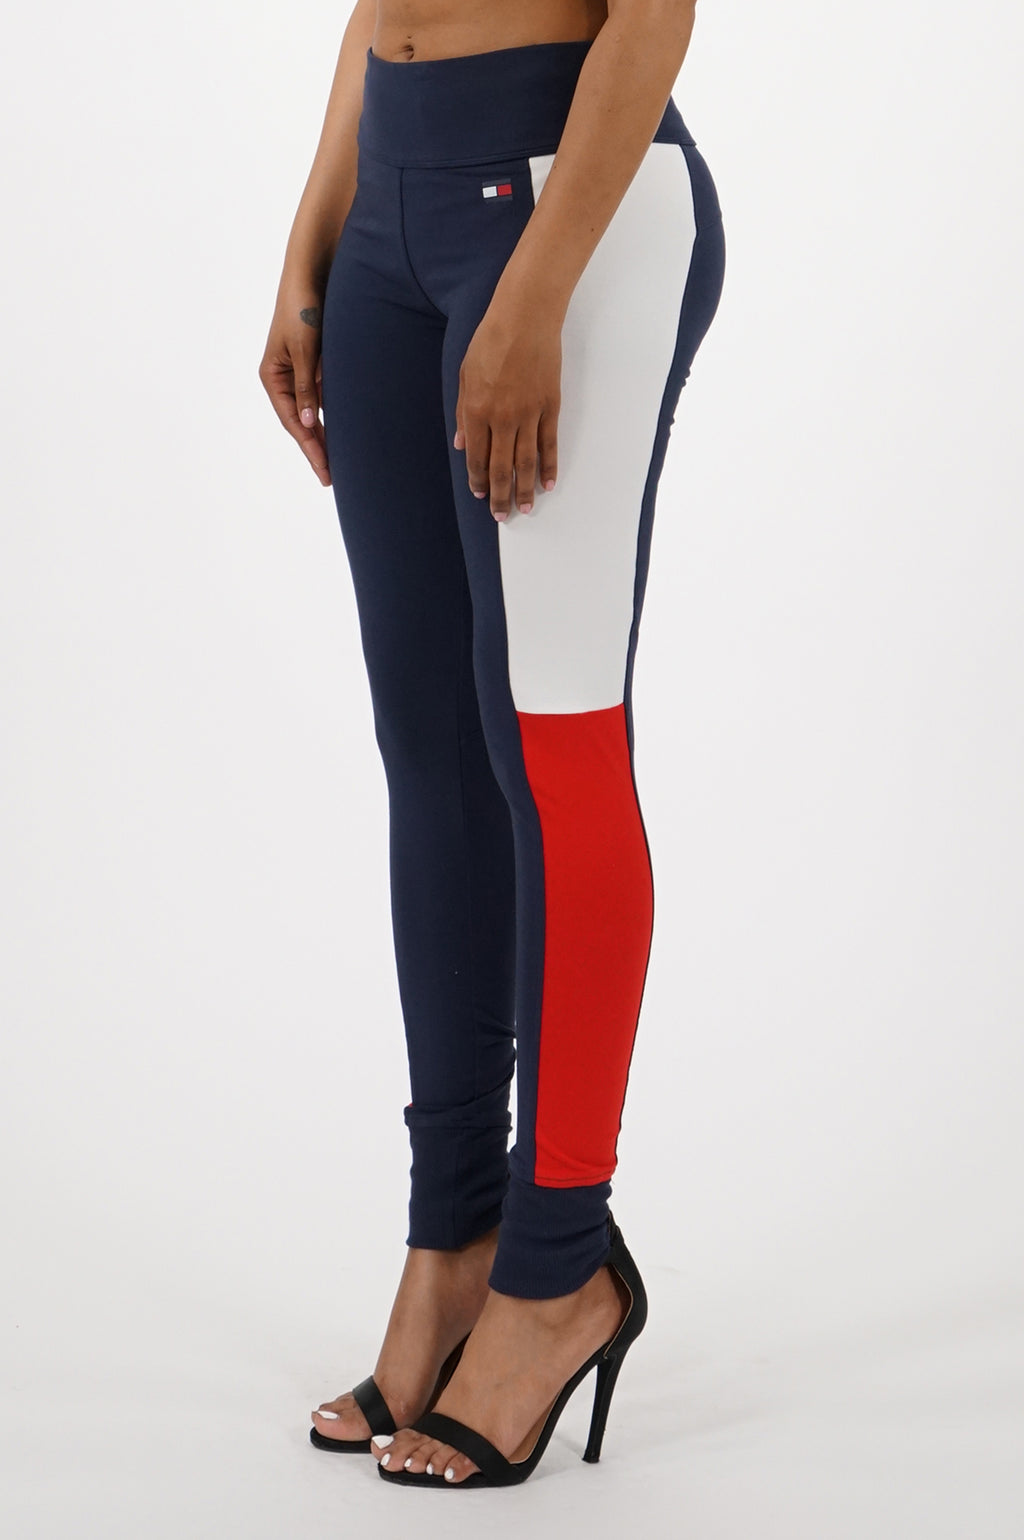 Tommy Hilfiger Activewear Womens Mid Rise Cuffed Flag Blocked Legging